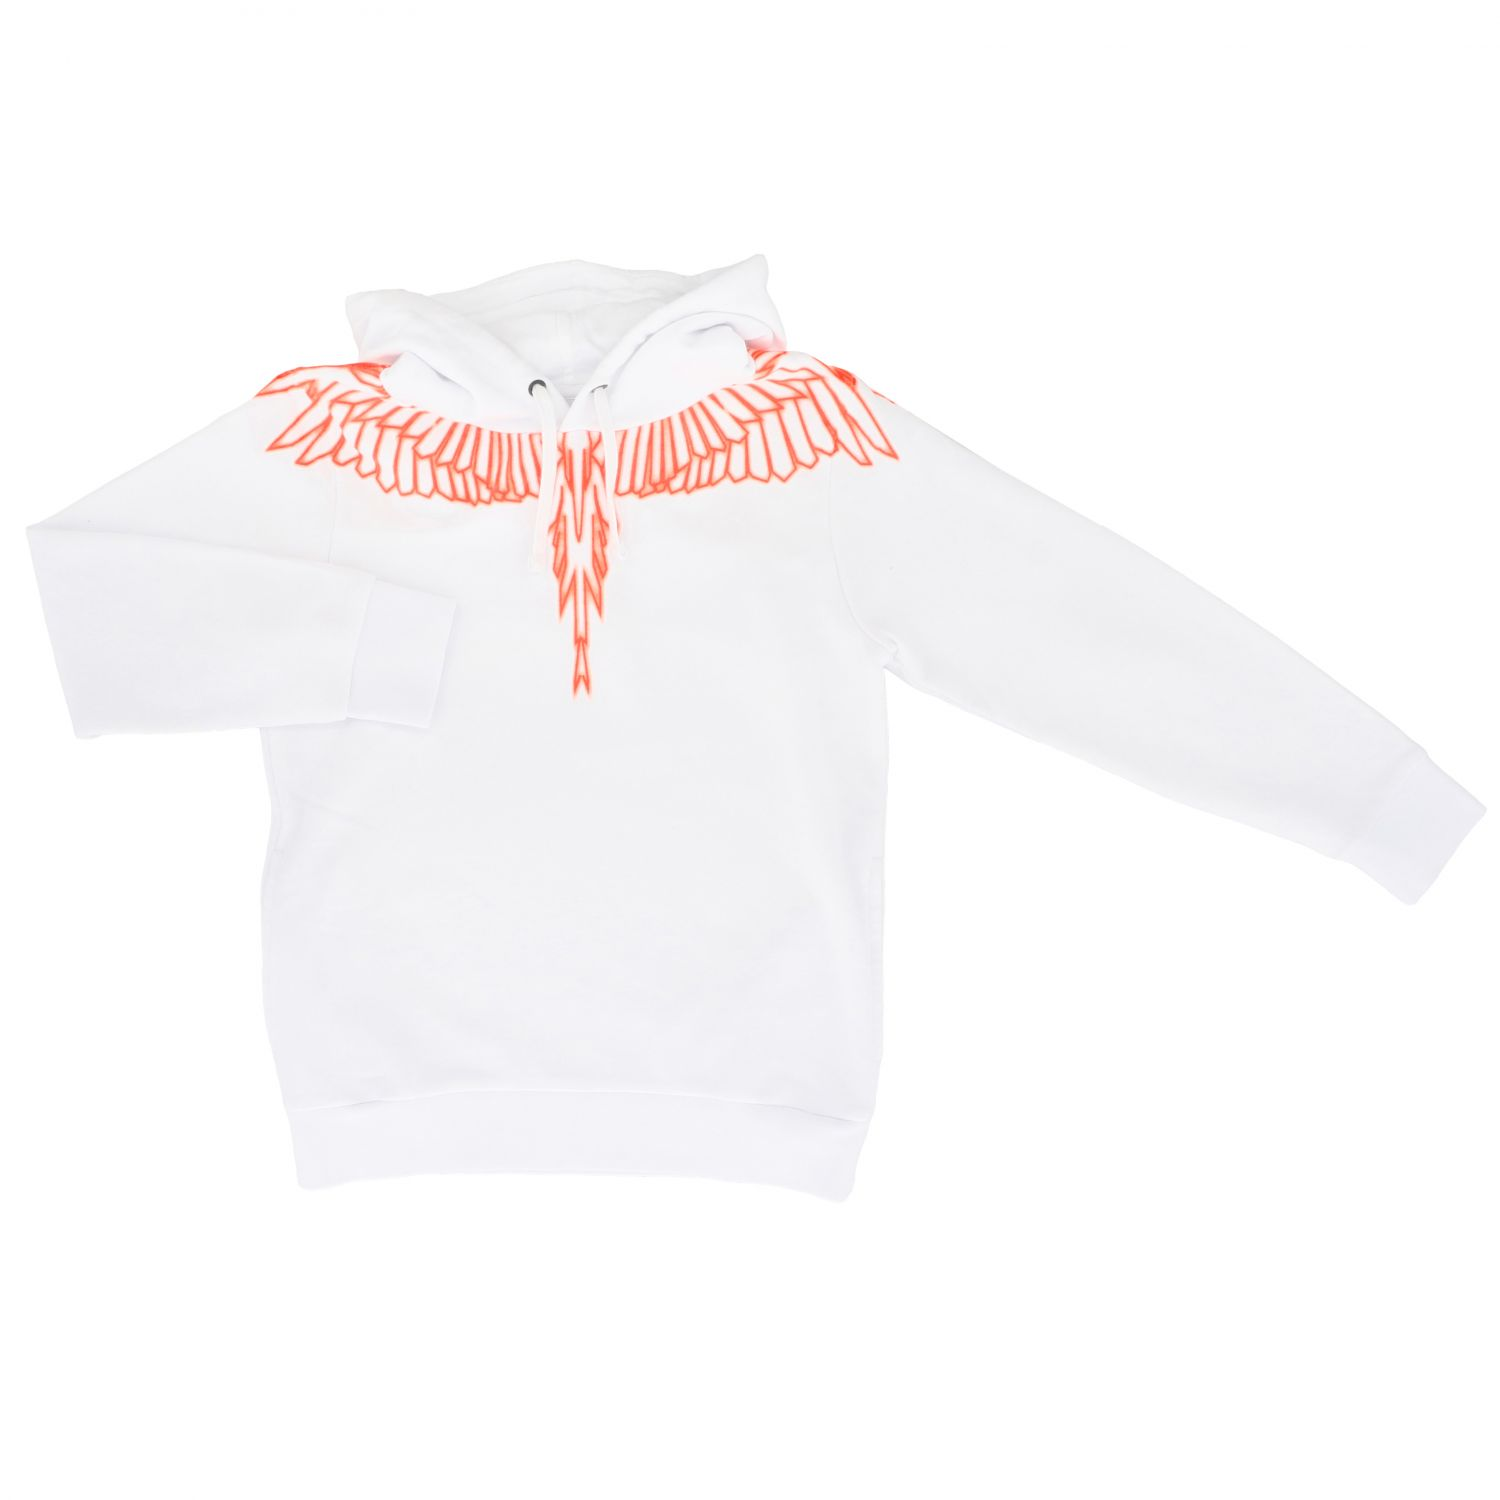 Marcelo Burlon hooded sweatshirt with feathers print black 1